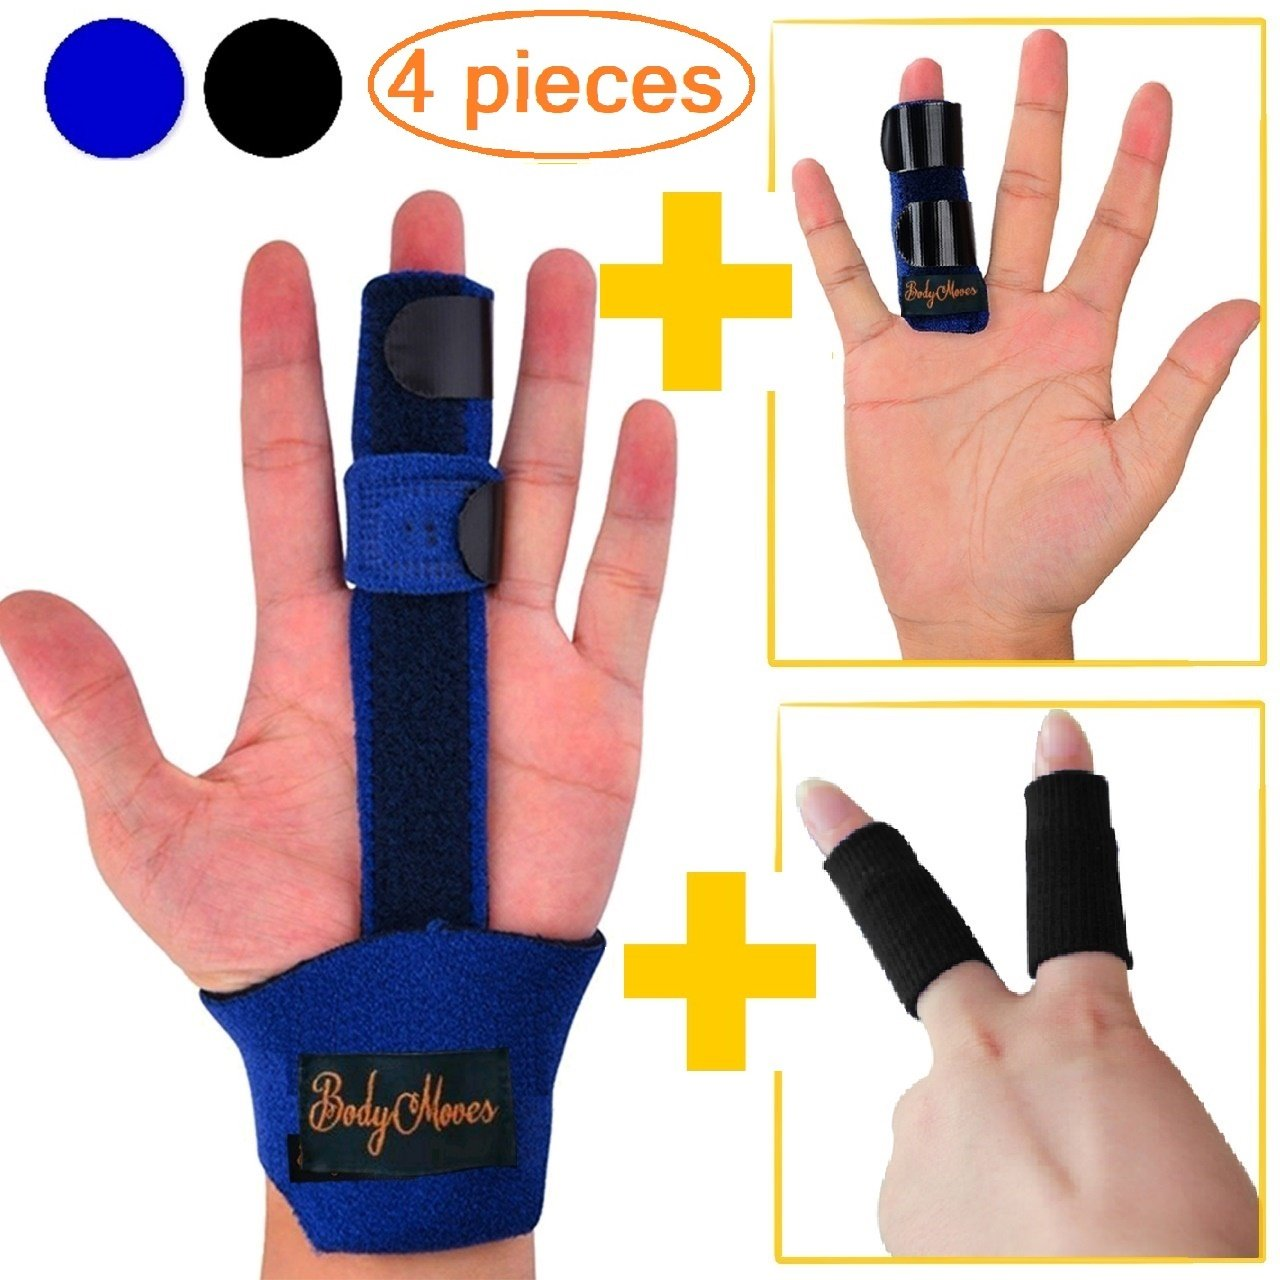 BodyMoves Finger Splint Plus Finger Extension Splint for Plus Nylon Sleeves Trigger Finger Mallet Finger Broken Finger Rheumatoid Arthritis Post Operative Finger Brace stabilizer Tenosynovitis